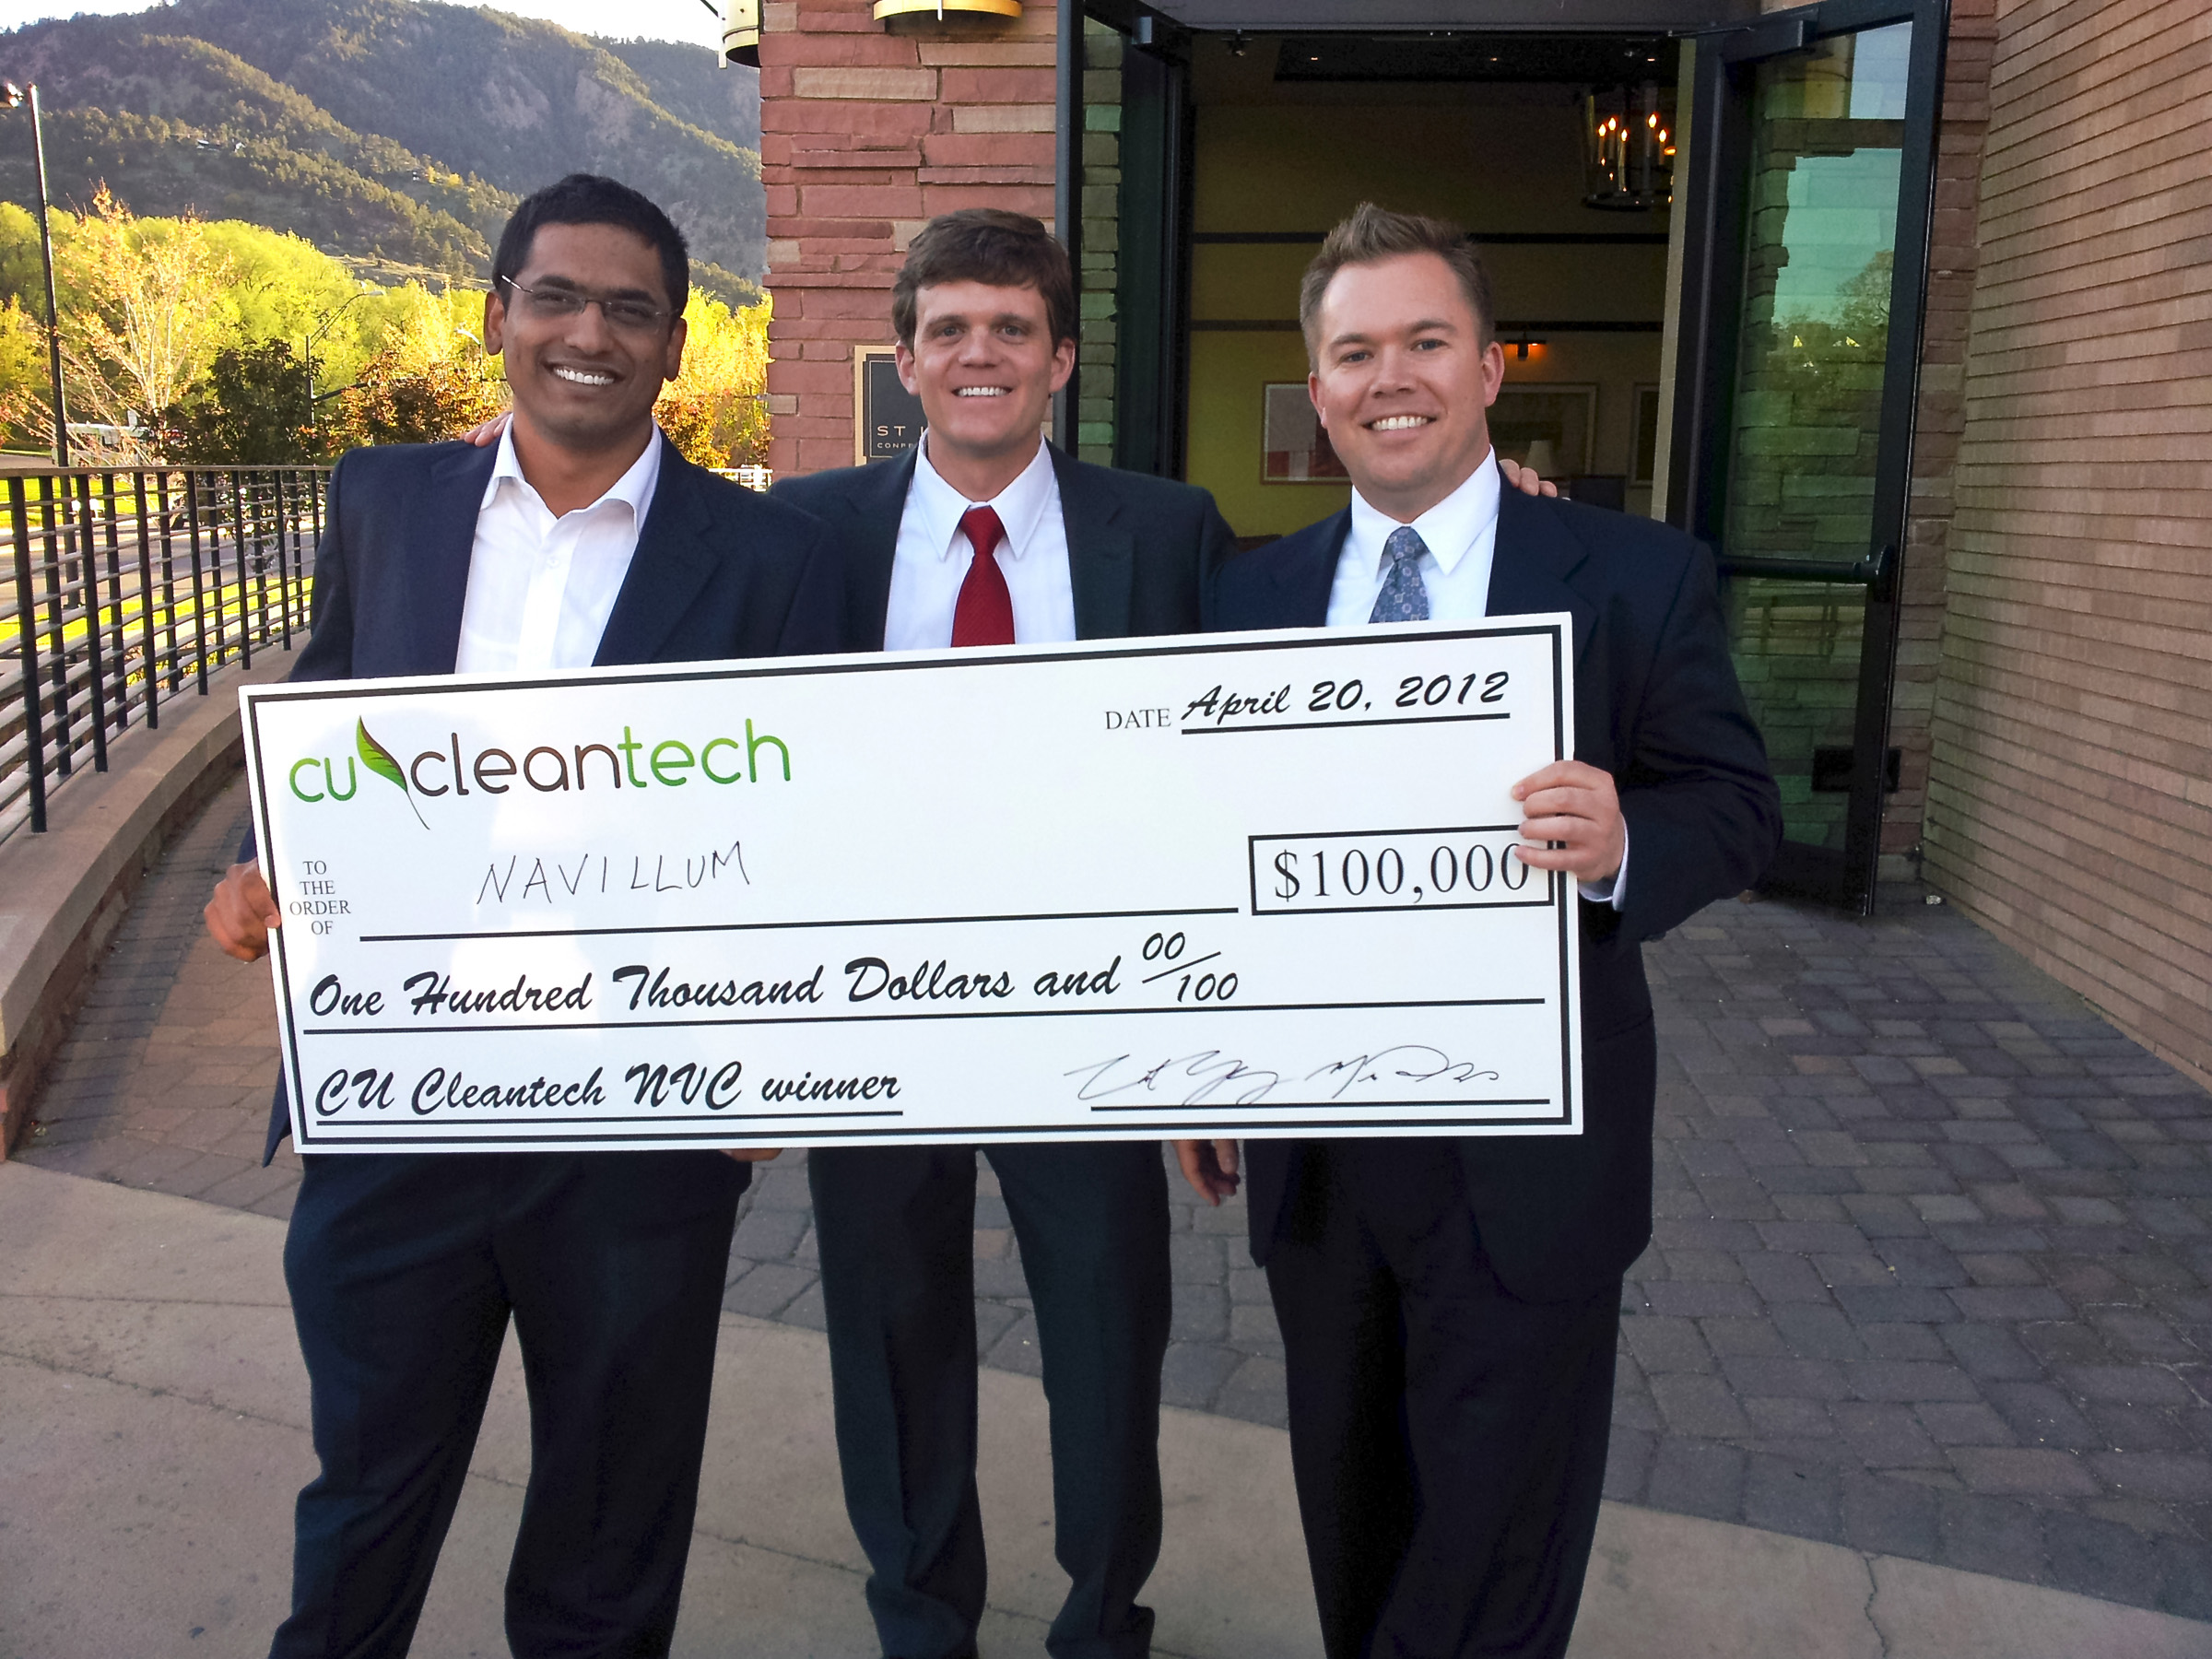 M.B.A. students from the David Eccles School of Business at the University of Utah pose with a $100,000 check they won at the CU Cleantech New Venture Challenge. Picture are, left to right, Ameya Chaudhari, Chris Lewis and Ryan Tucker.